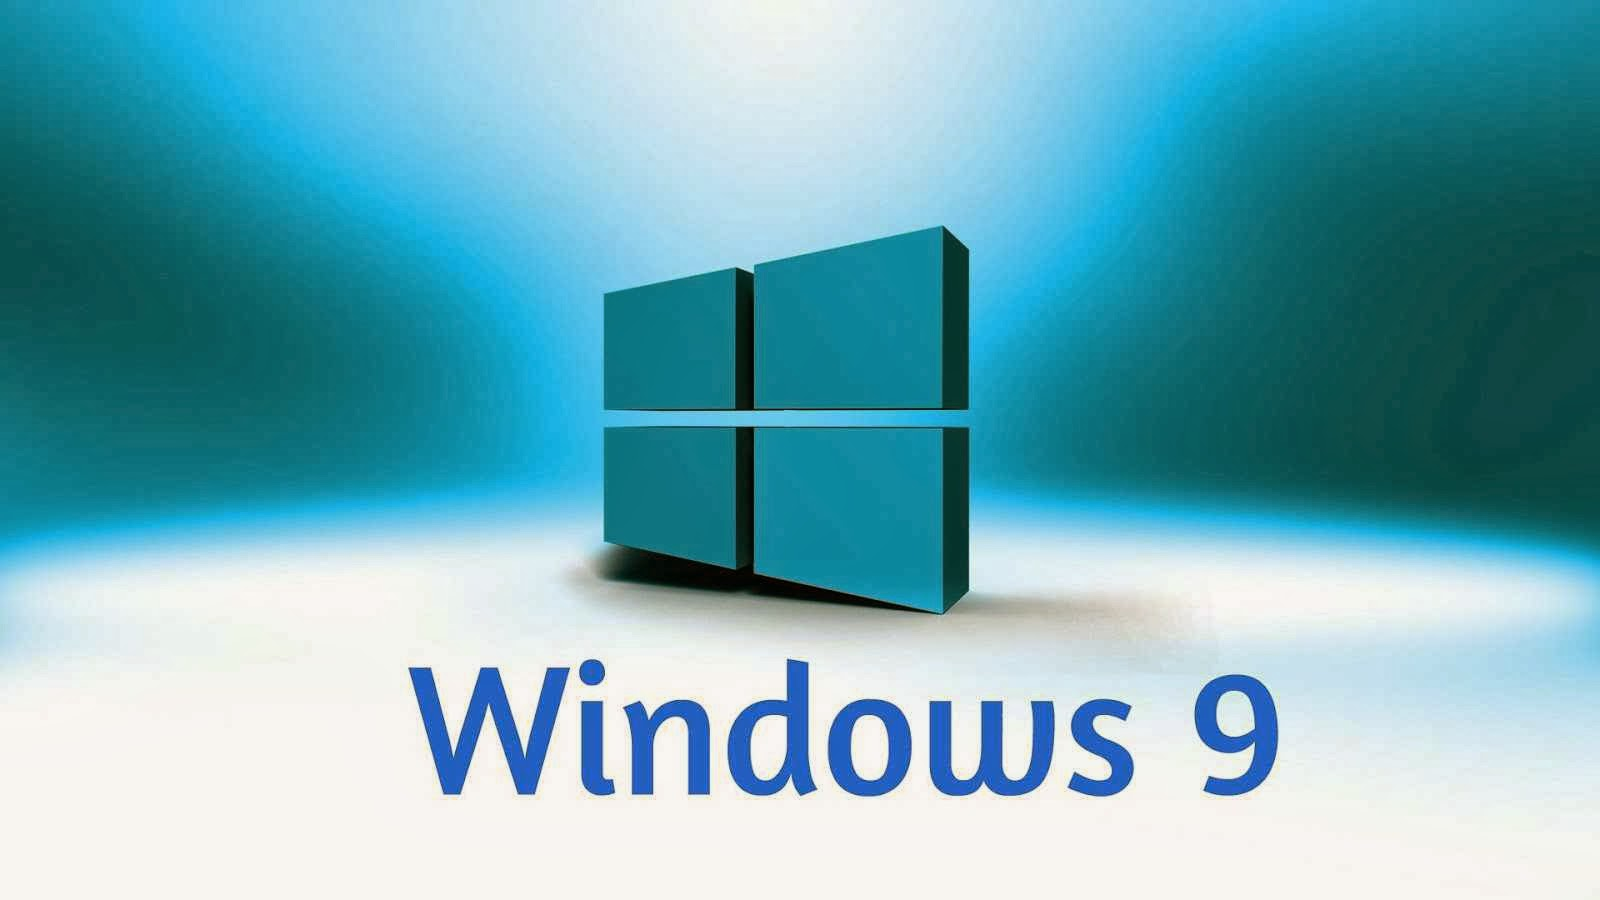 Wallpaper, Windows 9, Free Wallpaper Windows 9 Keren